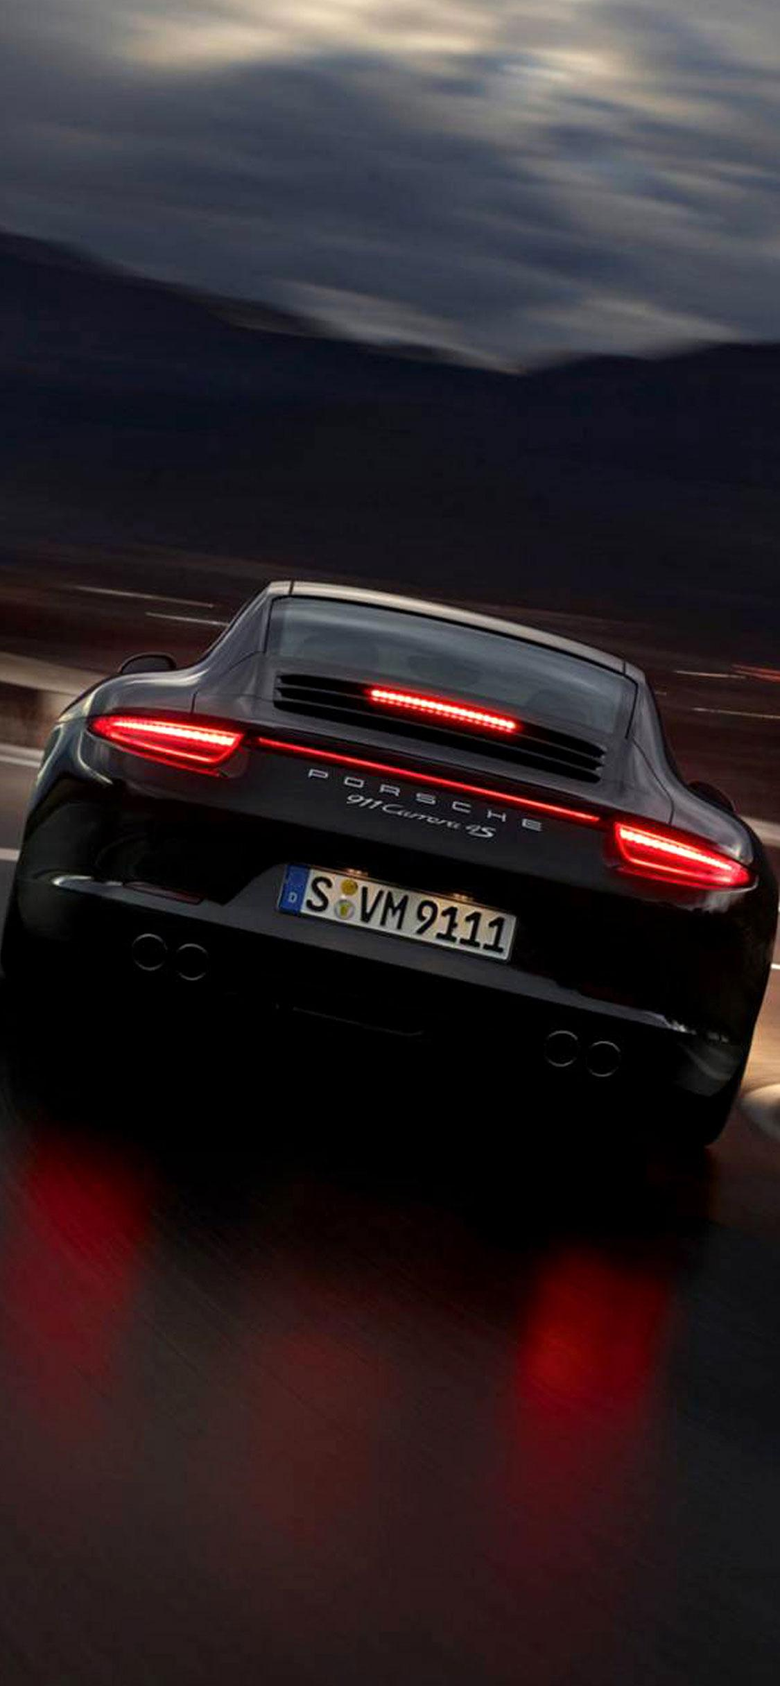 Best Porsche wallpapers for iPhone X iOSwall